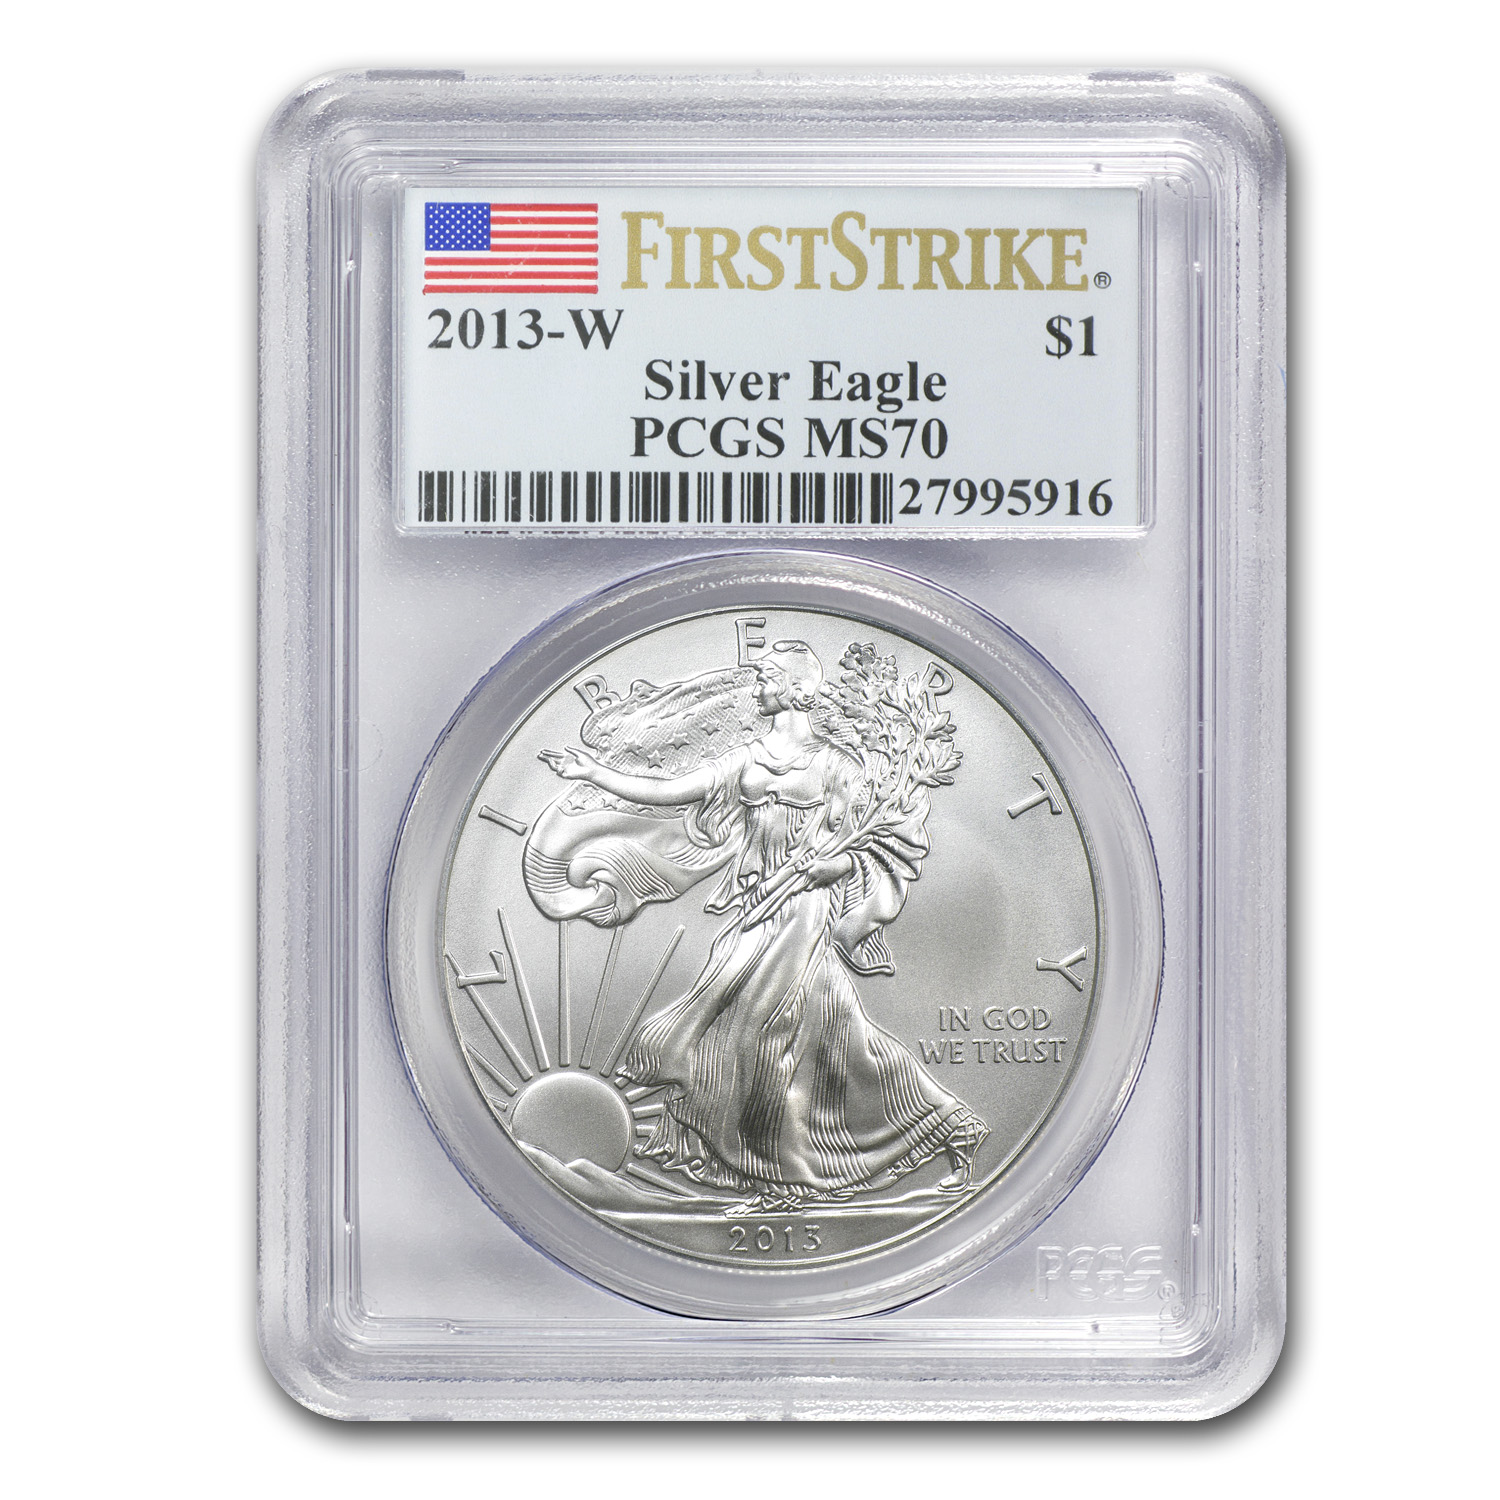 2013-W Burnished Silver Eagle - MS-70 PCGS - First Strike